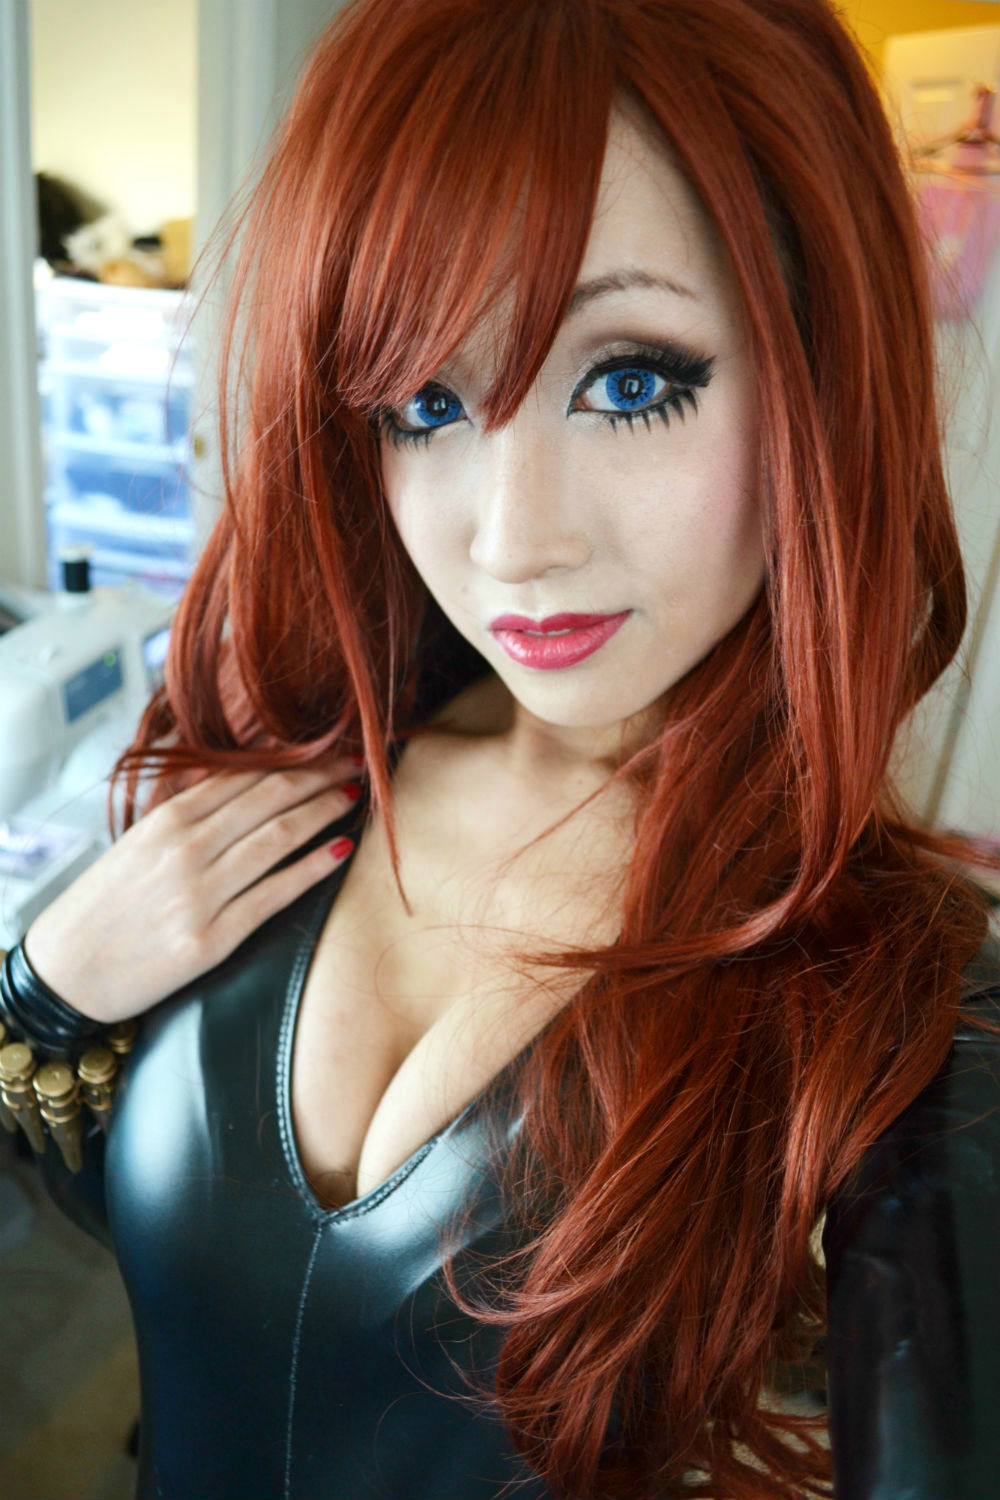 Black Widow Selfie by DollyLollipop